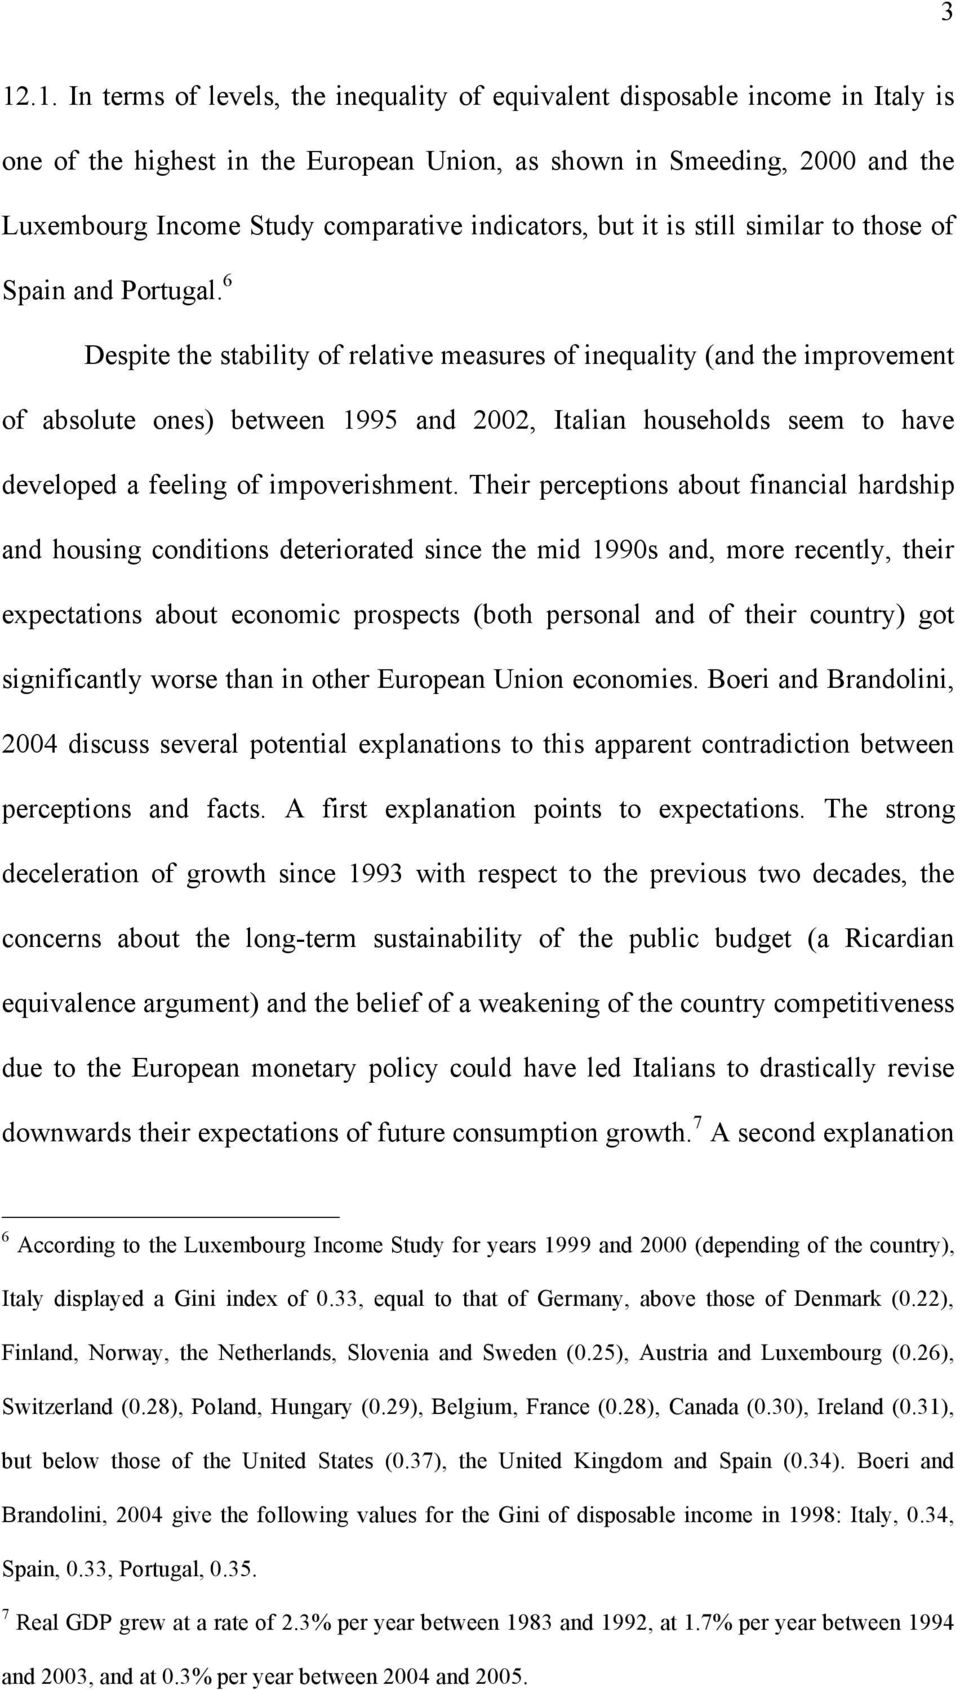 6 Despite the stability of relative measures of inequality (and the improvement of absolute ones) between 1995 and 2002, Italian households seem to have developed a feeling of impoverishment.